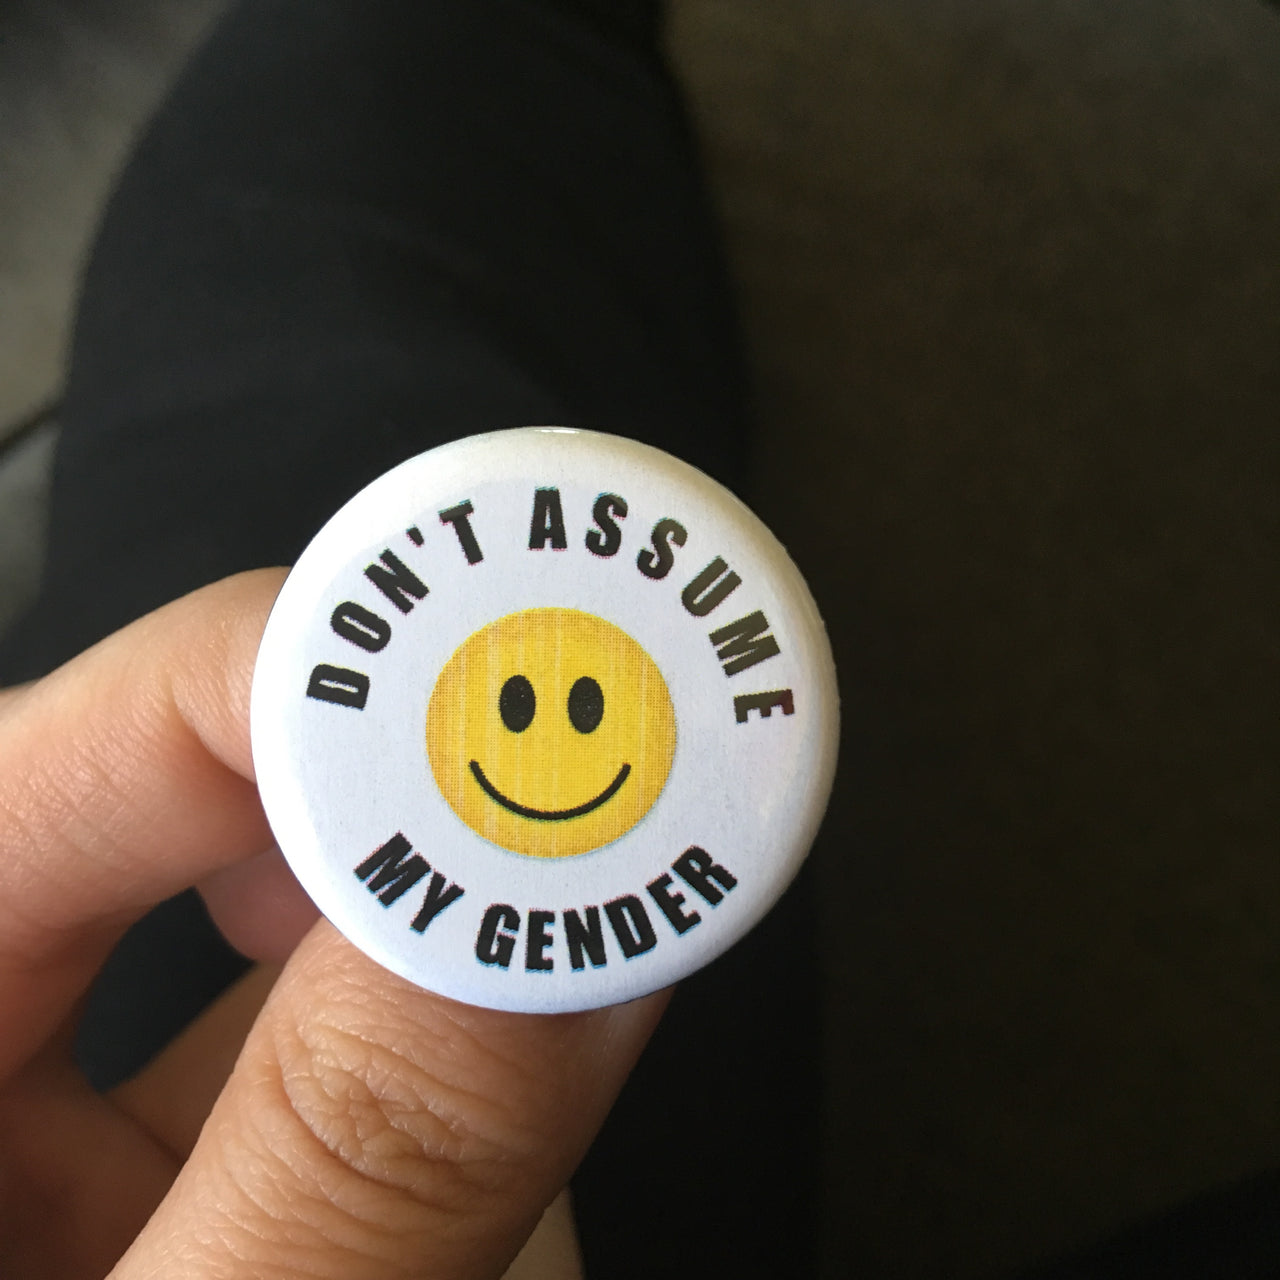 Don't assume my gender - Radical Buttons